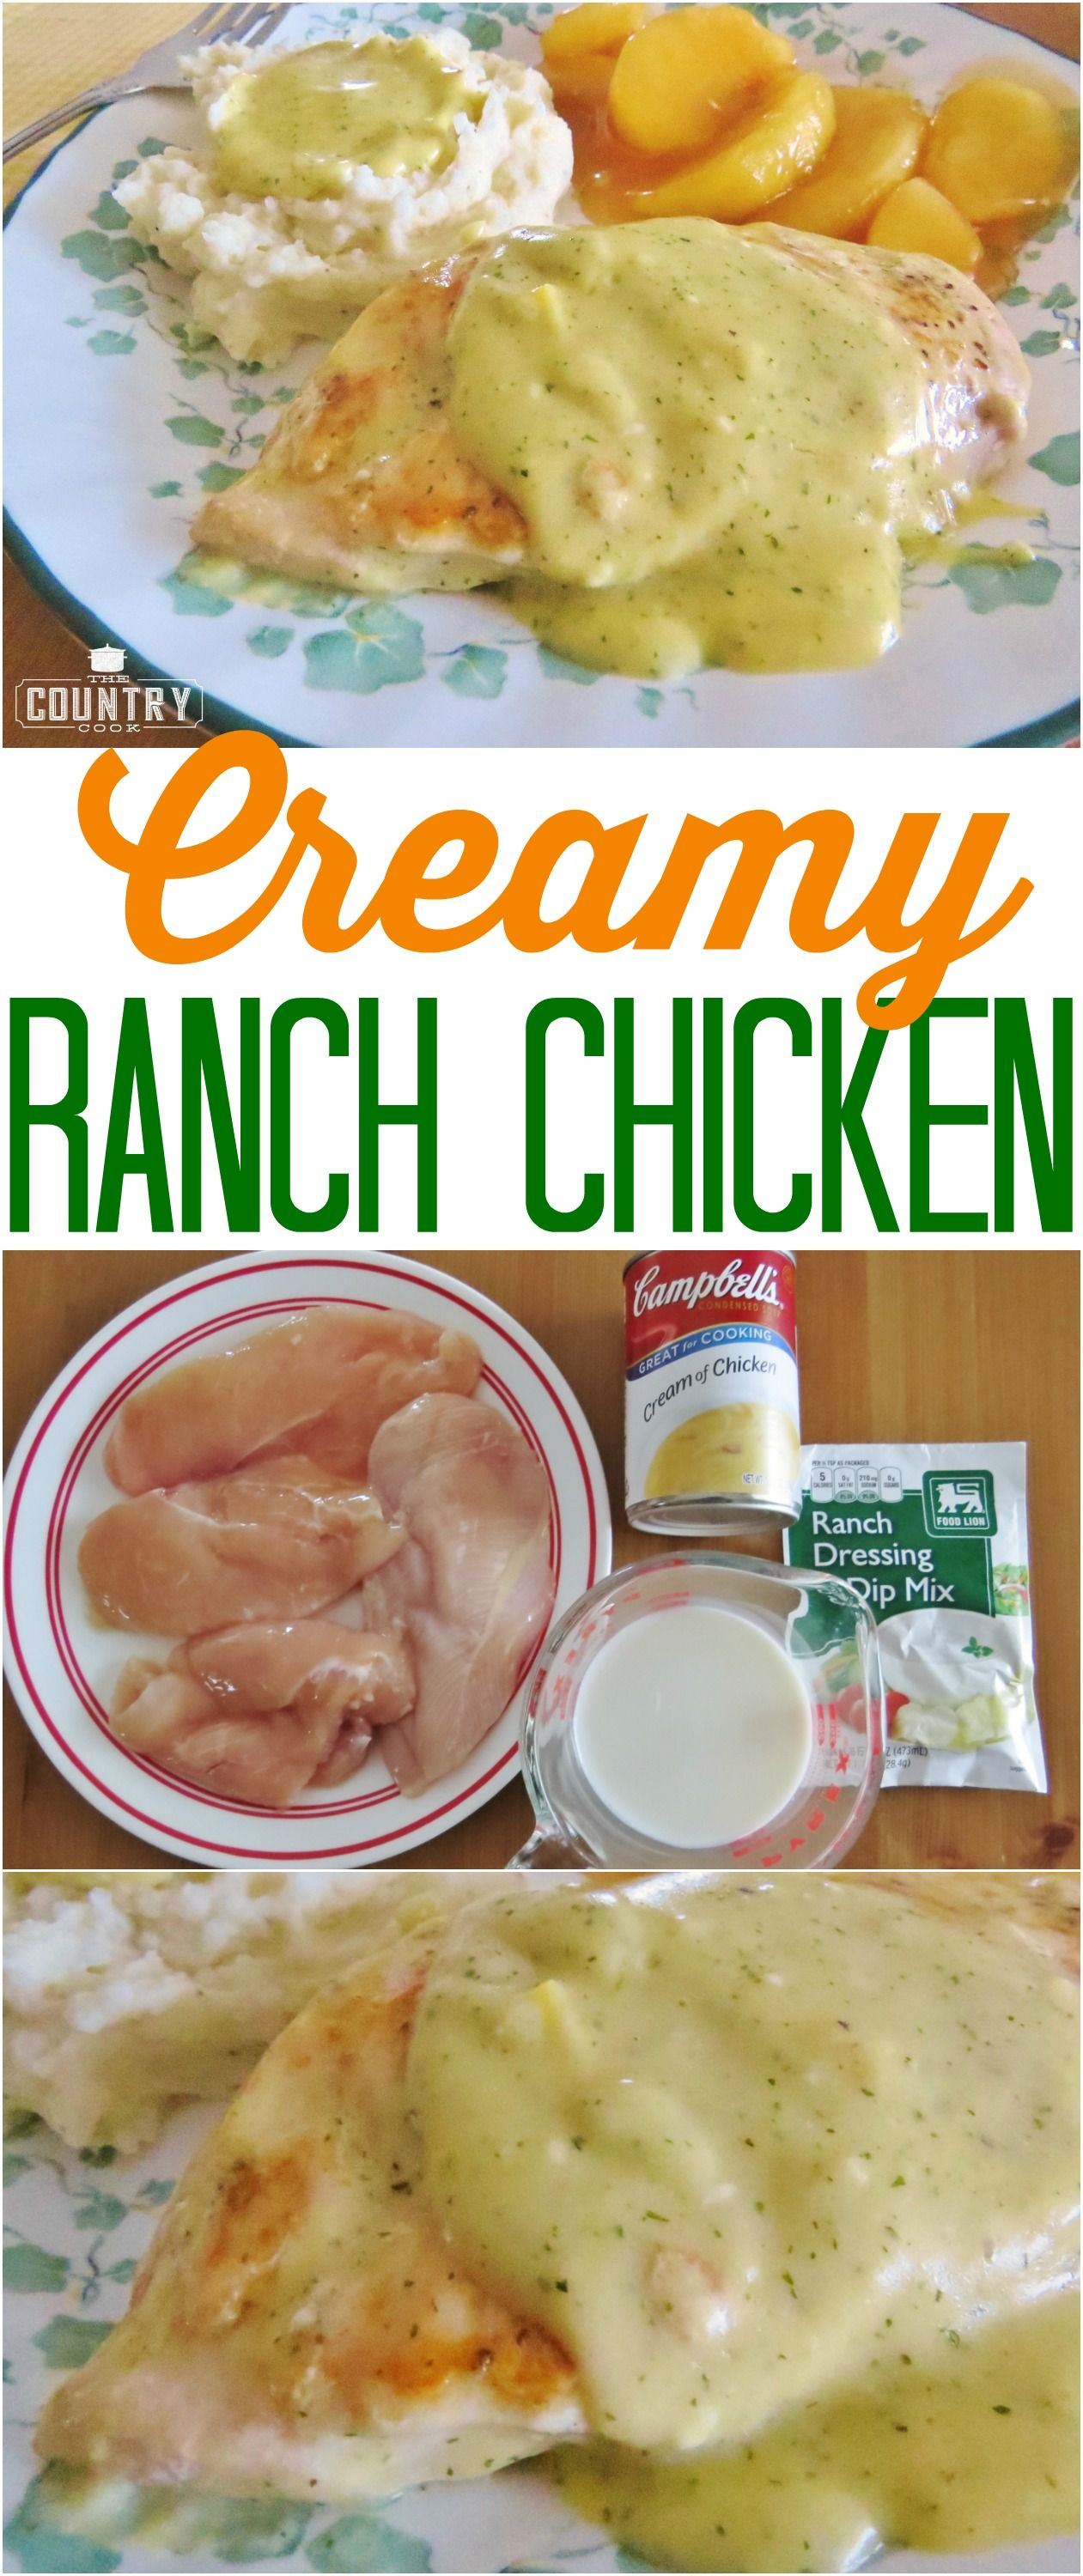 Creamy Ranch Chicken Recipe From The Country Cook Only 4 Ingredients Creamy Ranch Chicken Recipe Recipes Ranch Chicken Recipes